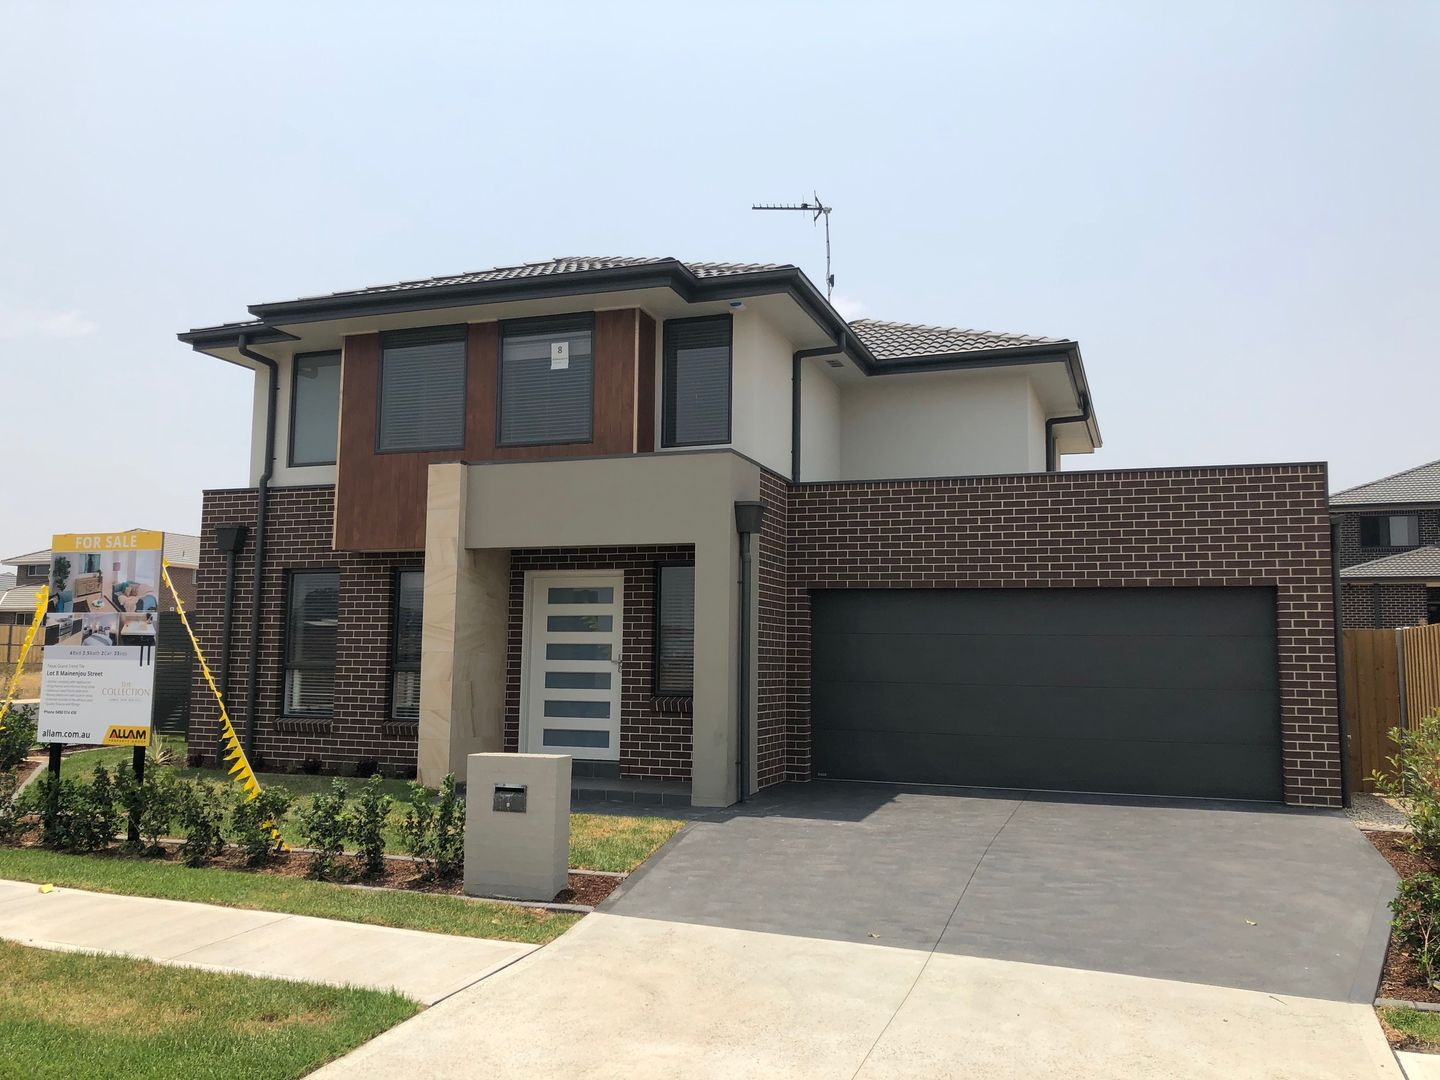 Lot 8 Maineanjou Street, Box Hill NSW 2765, Image 0